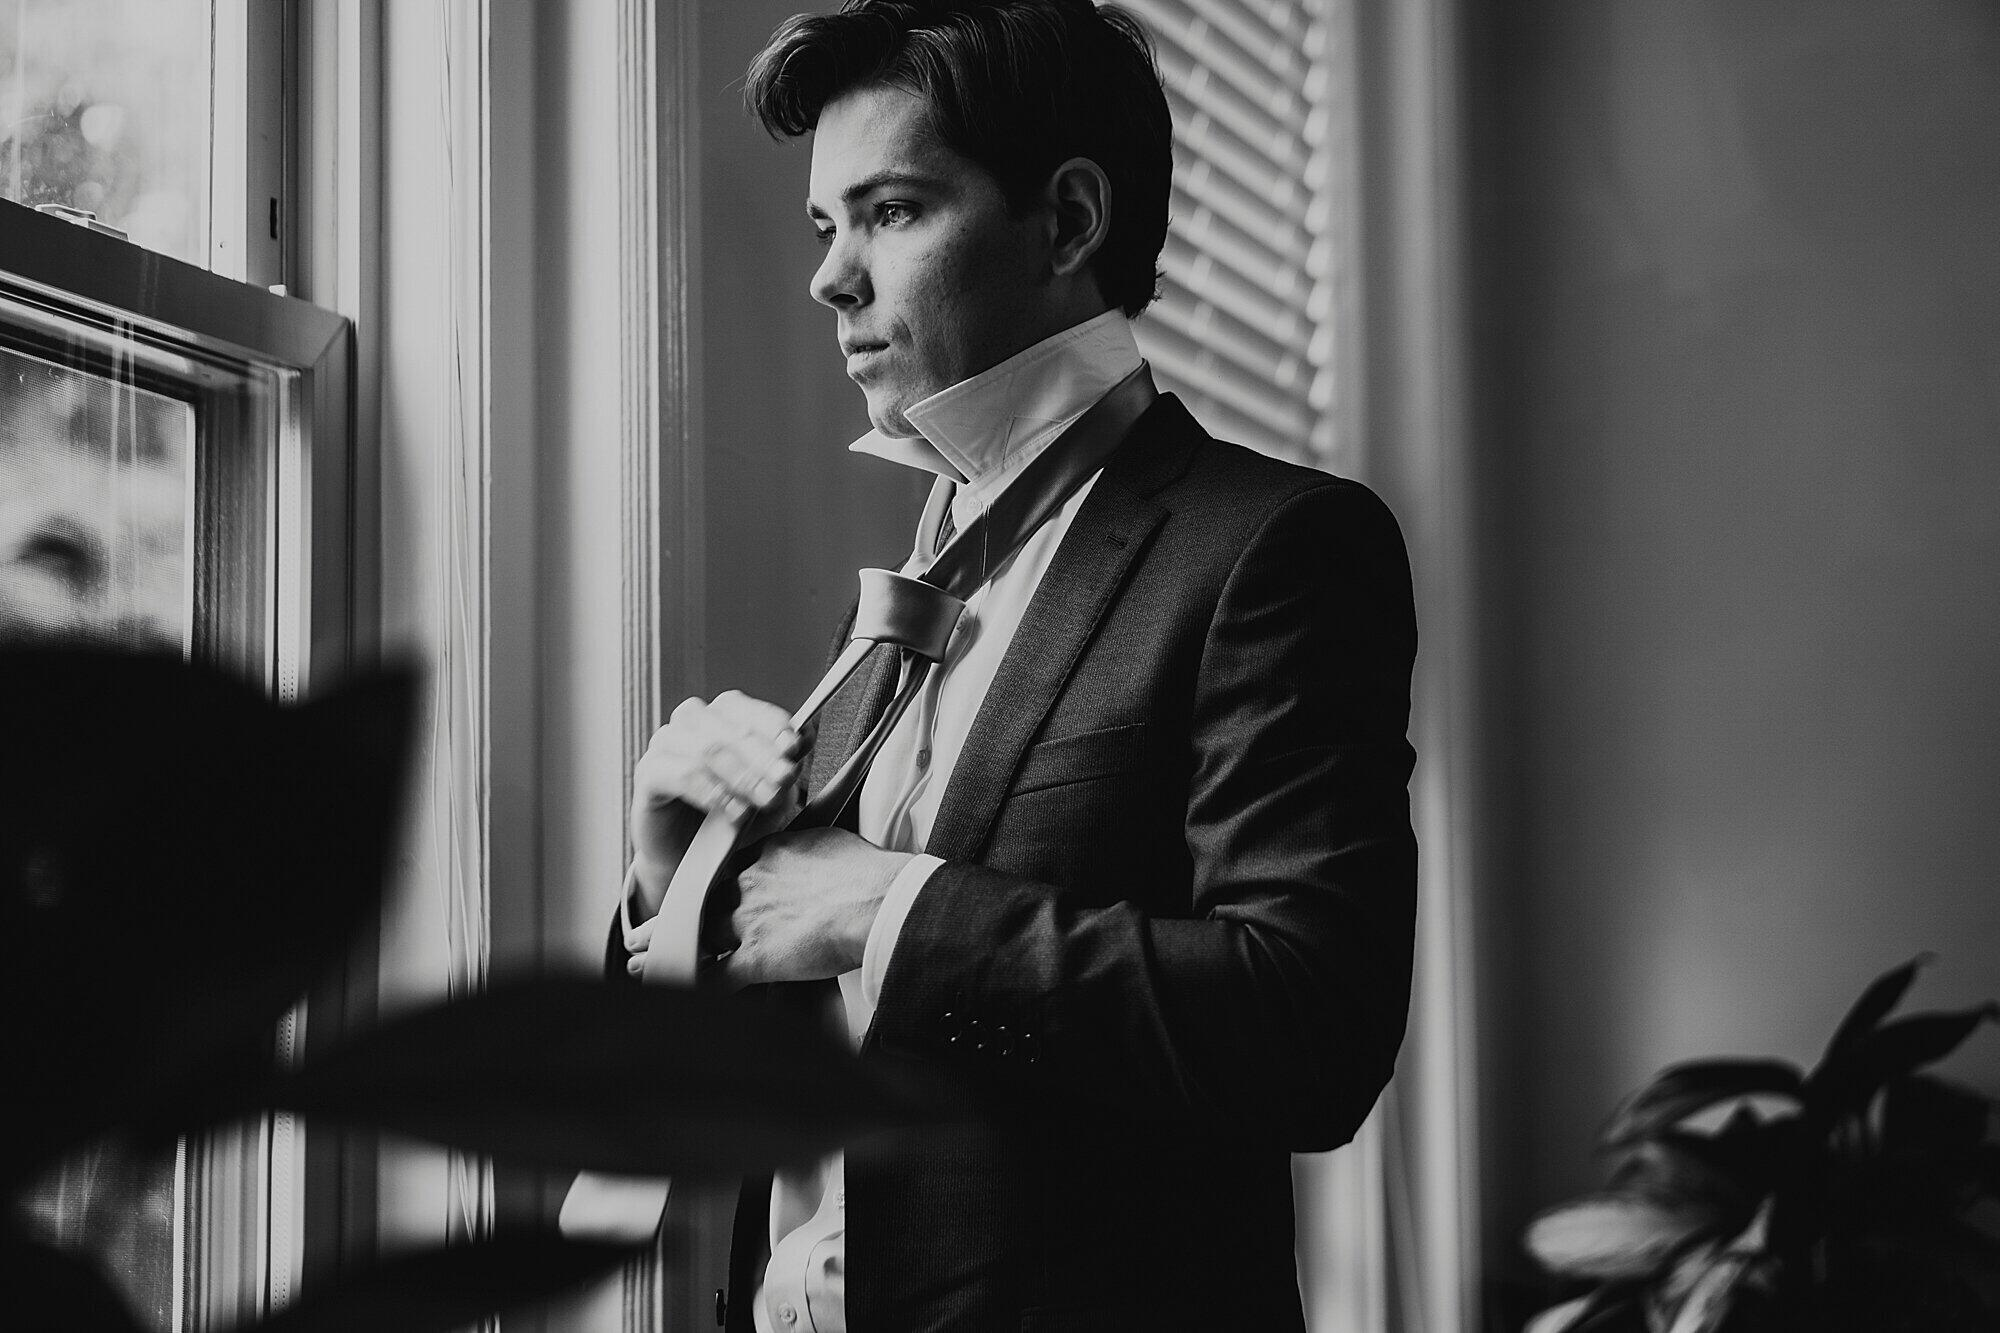 black and white photo of groom getting ready at window